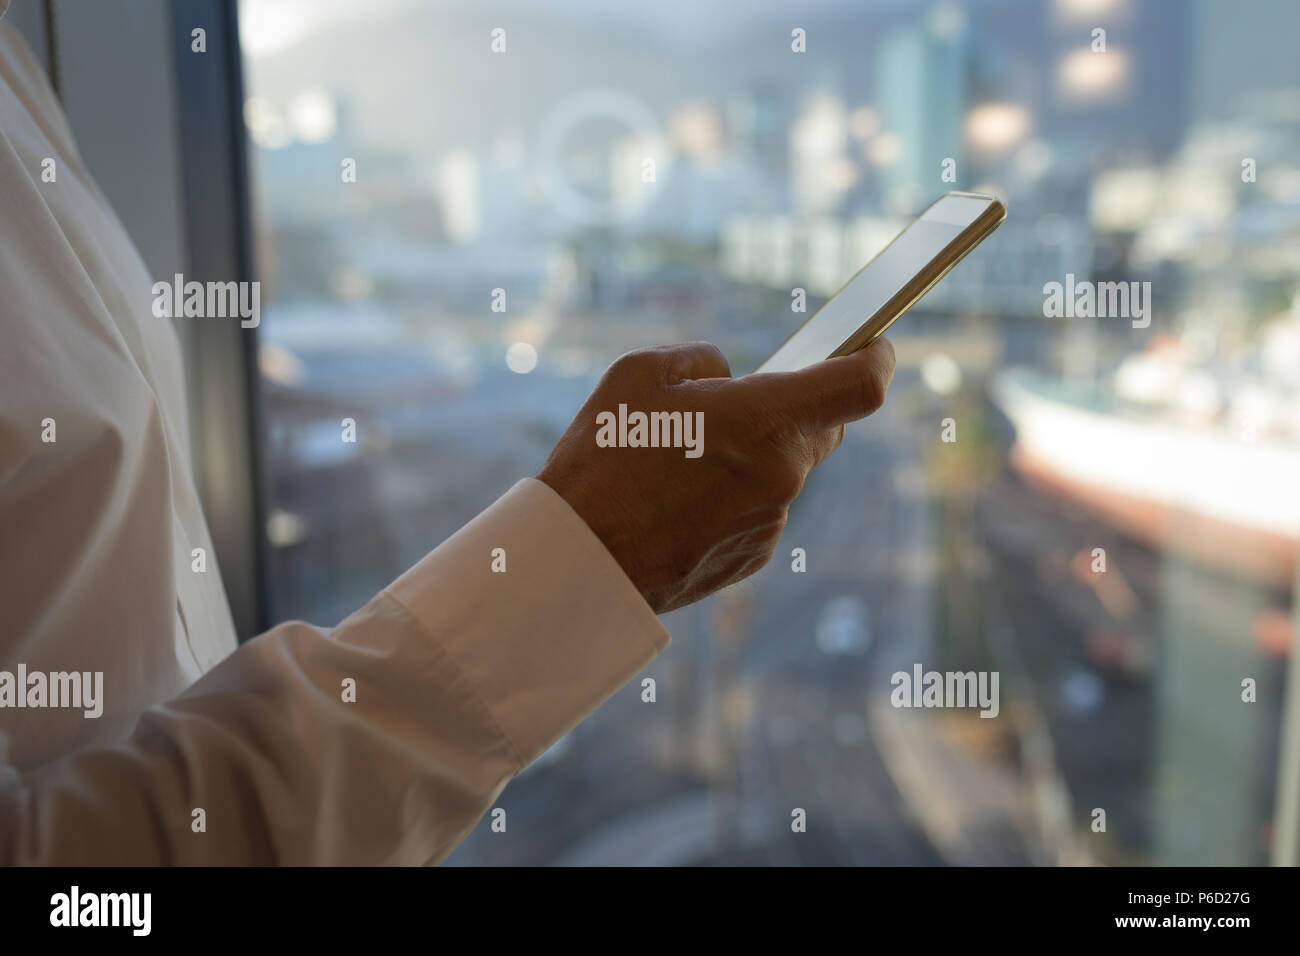 Businessman using smart phone in hotel room Photo Stock